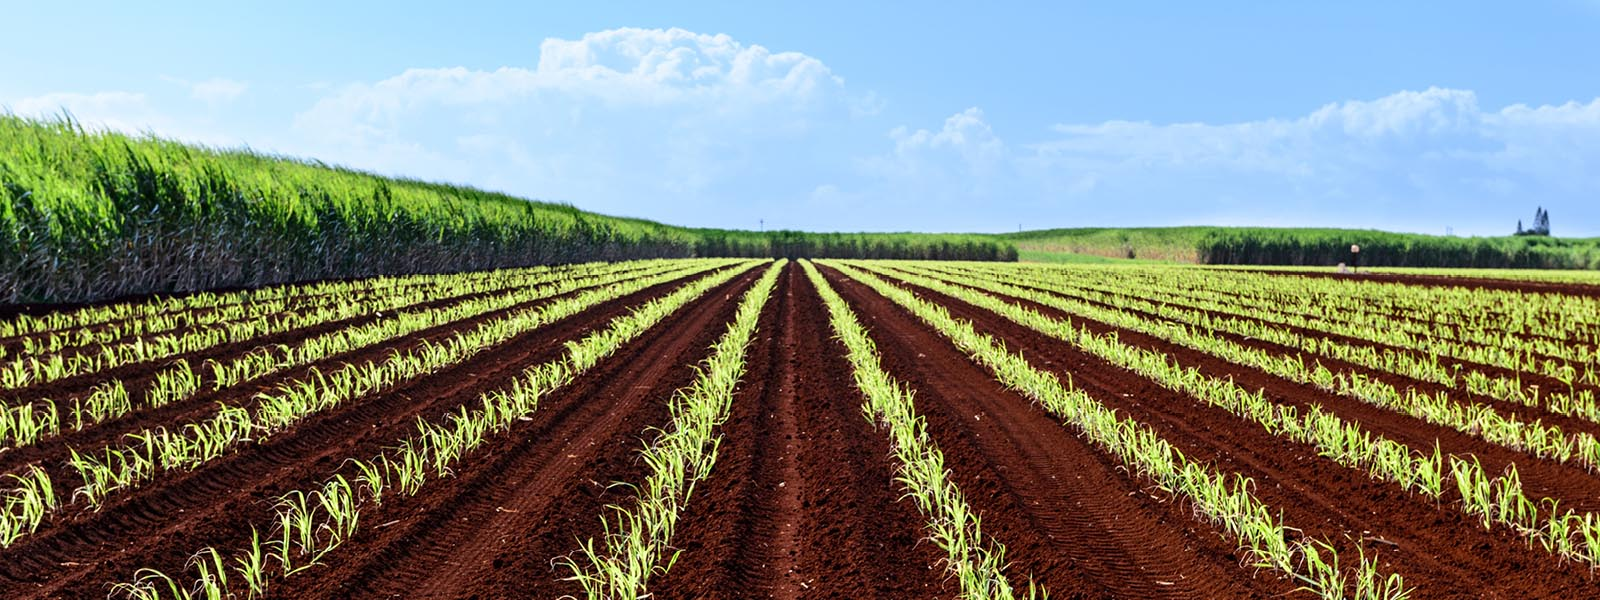 Bundaberg farm cane crop in red soil web